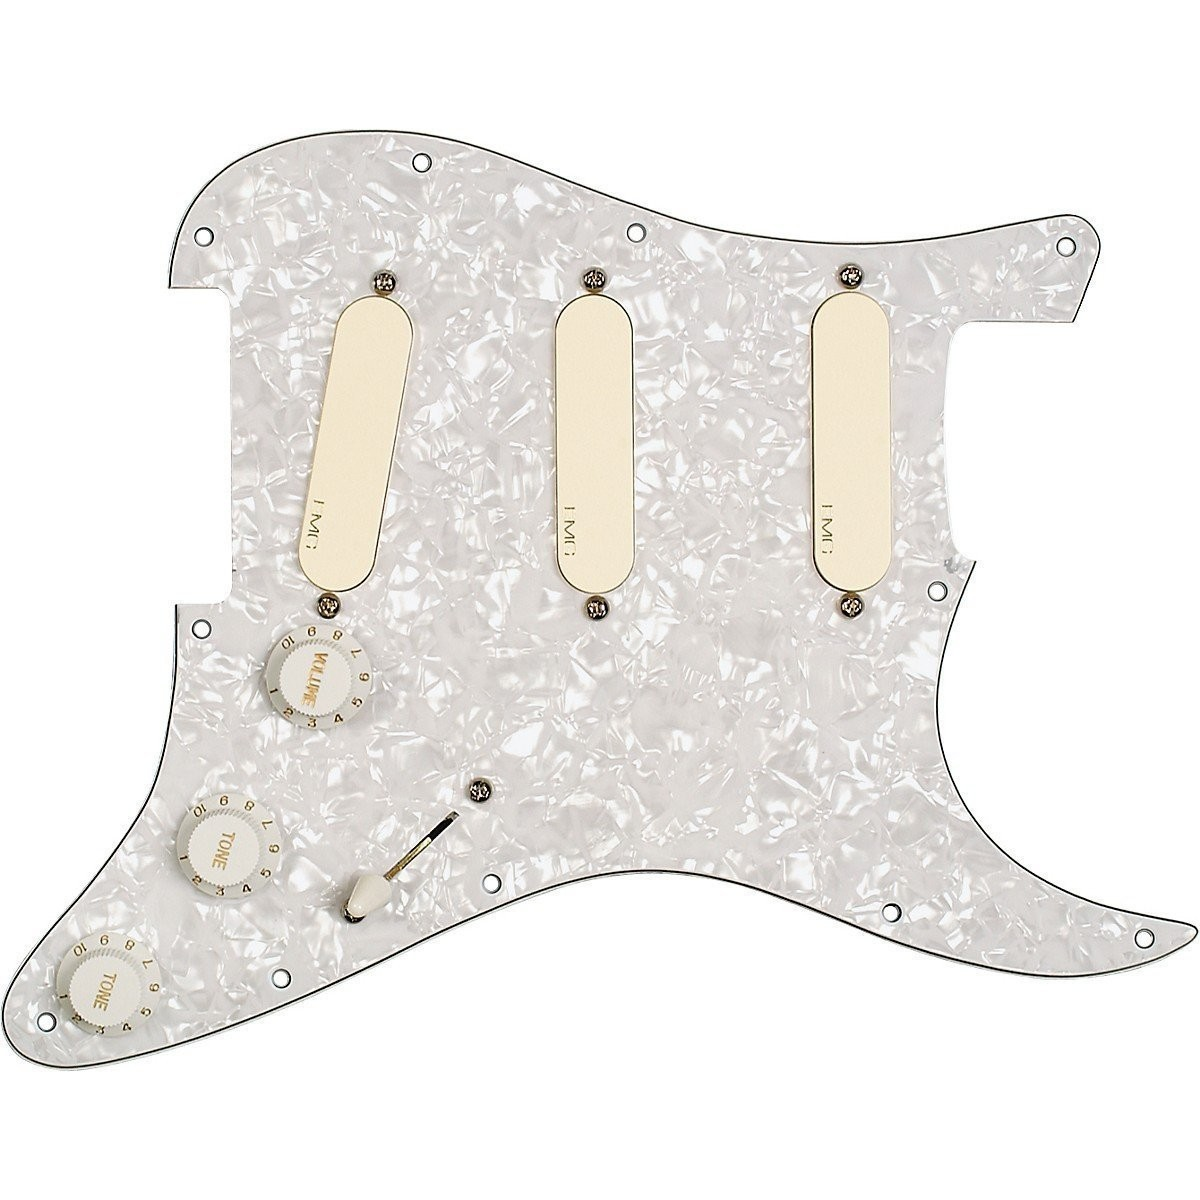 EMG DG20 David Gilmour ( your choice Pickguard )